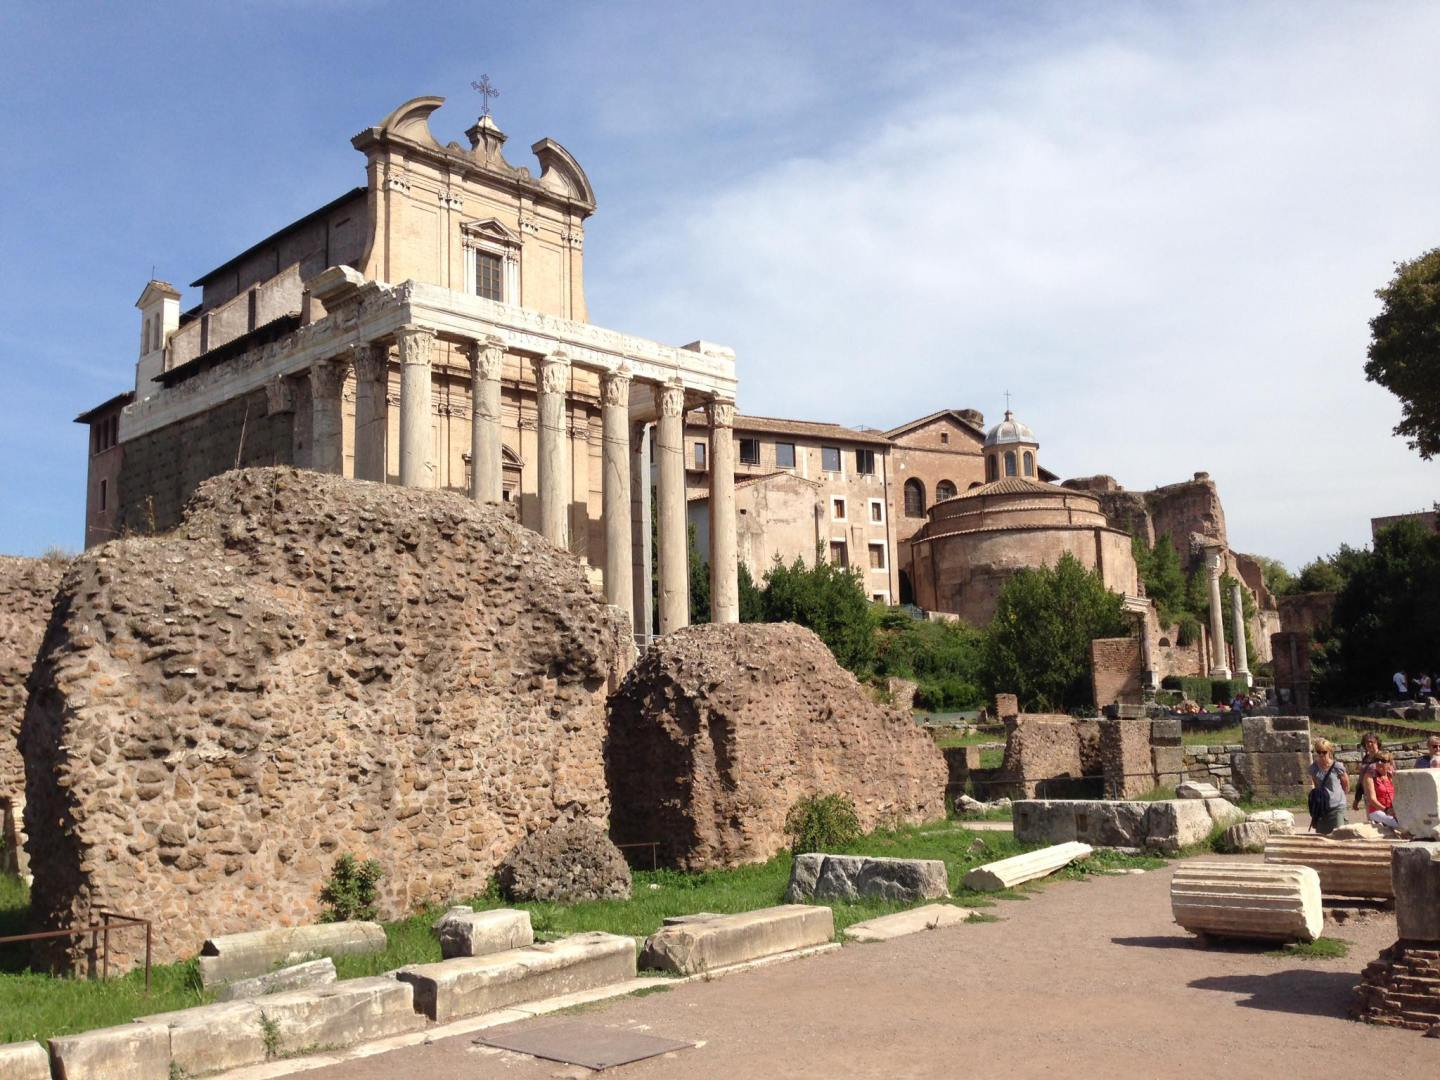 We were never short of things to see during our surprise trip to Rome.